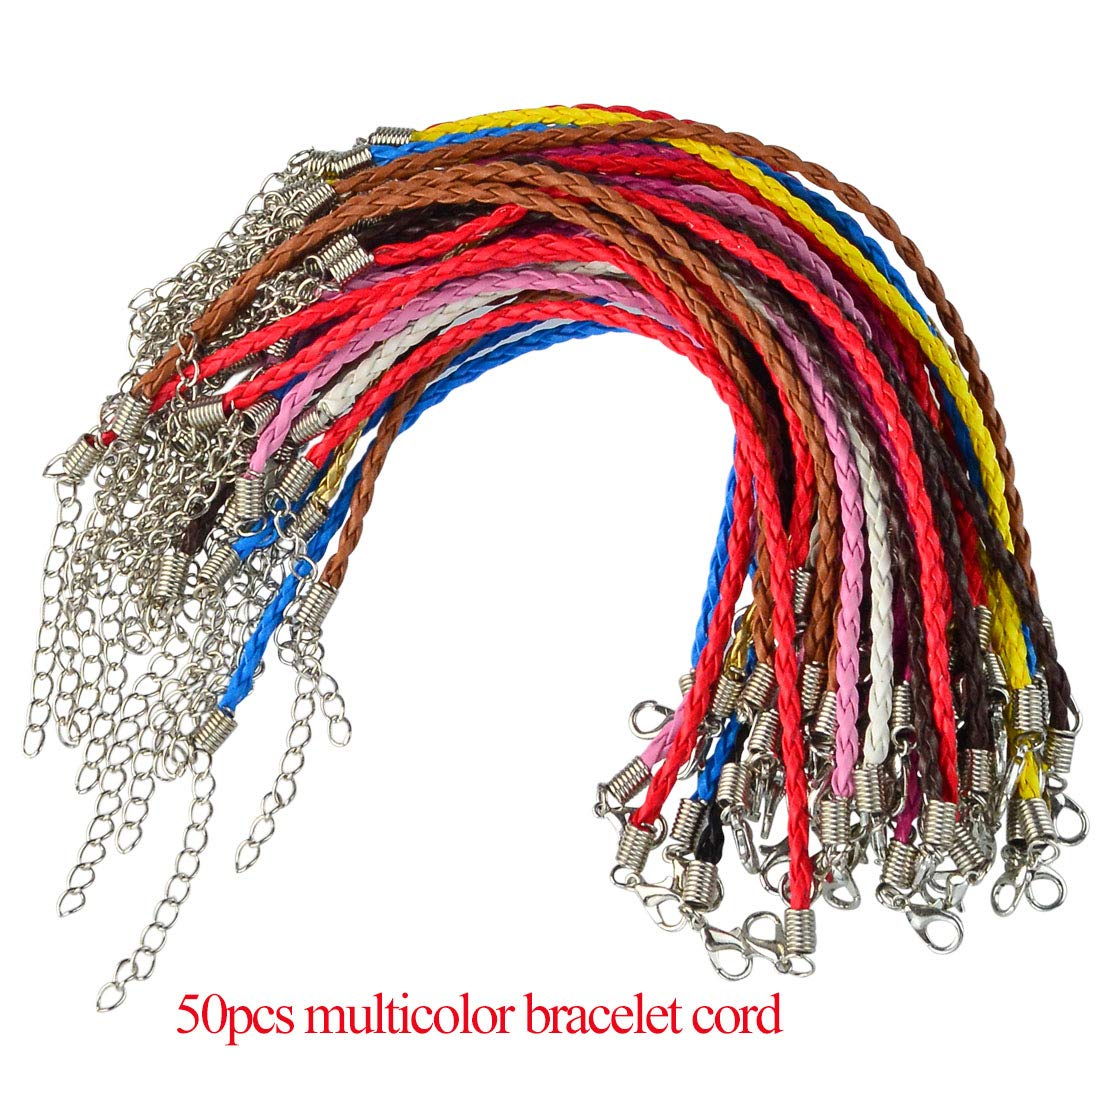 Yolyoo 150pcs Waxed Necklace Cord and Bracelet Making Cord with Lobster Clasp for DIY Jewelry Making,Mixed Color